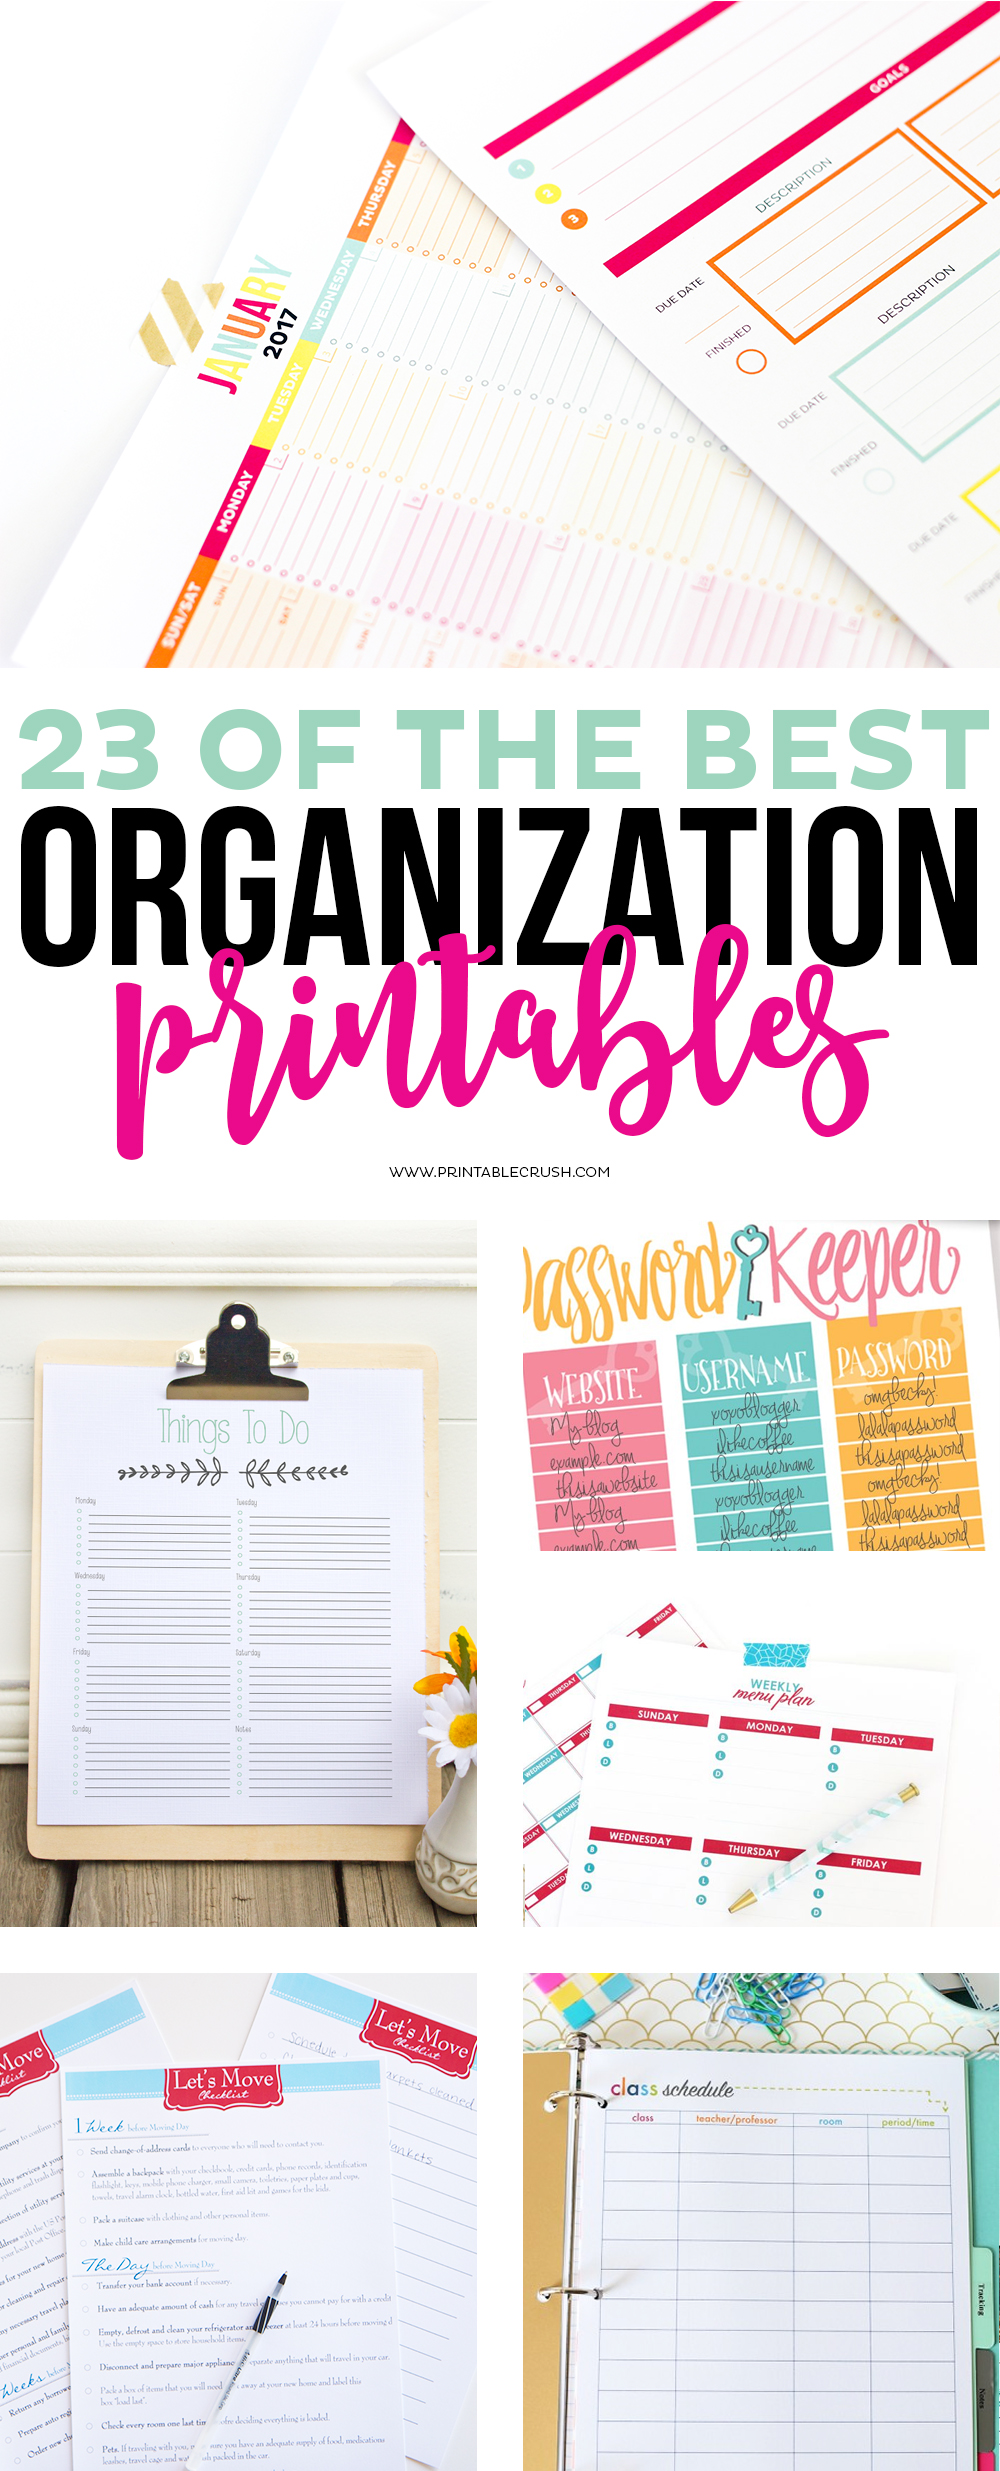 Best Calendar For Organization : Of the best organization printables printable crush